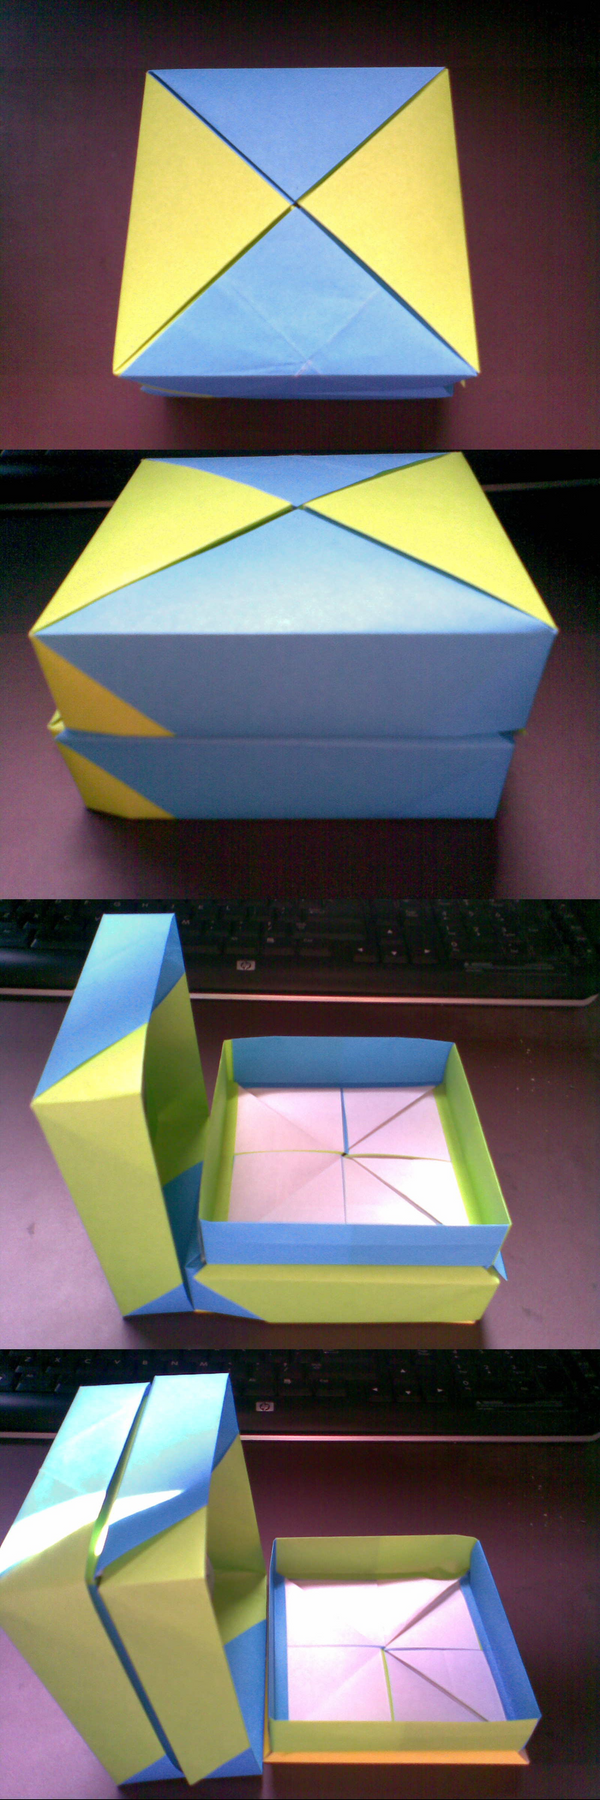 origami tower box by heyro0 on deviantart